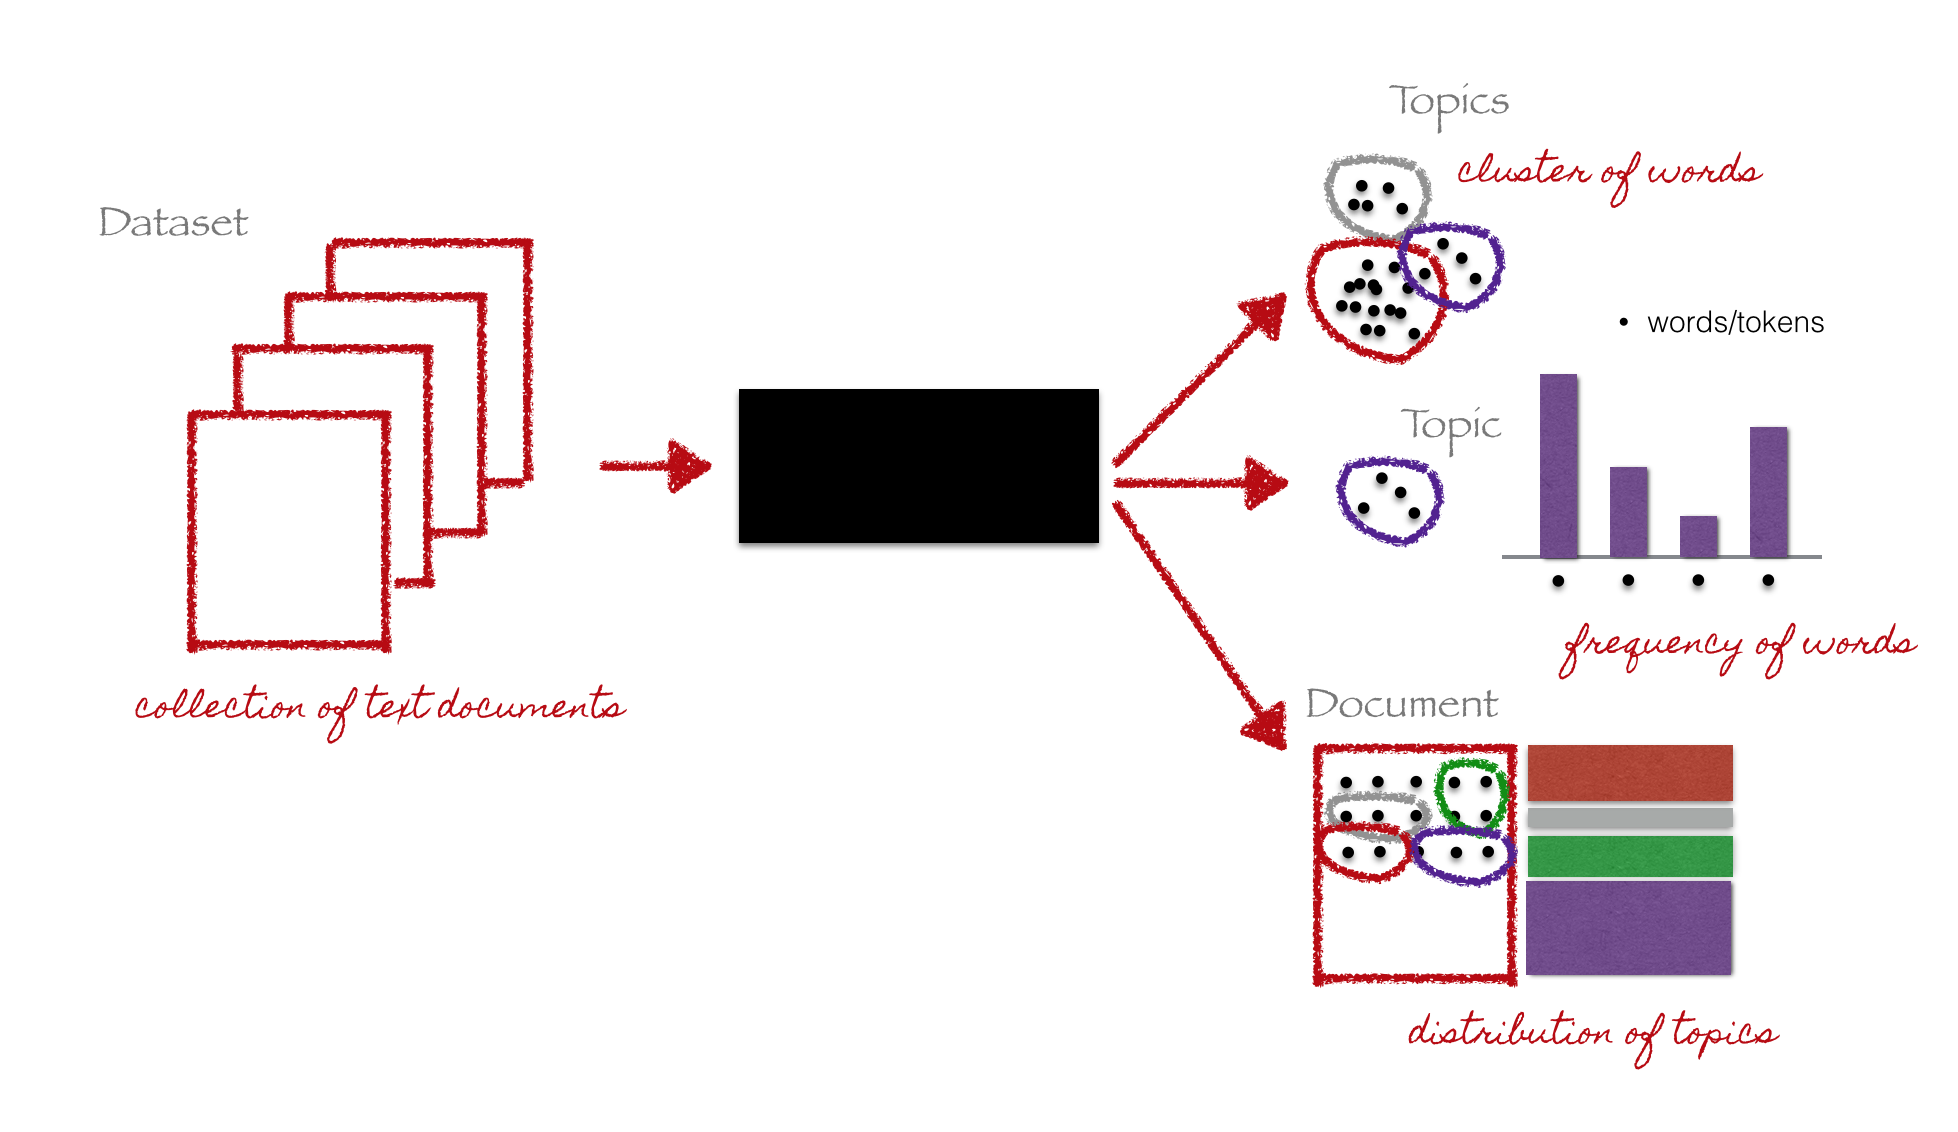 Topic modeling using Latent Dirichlet Allocation(LDA) and